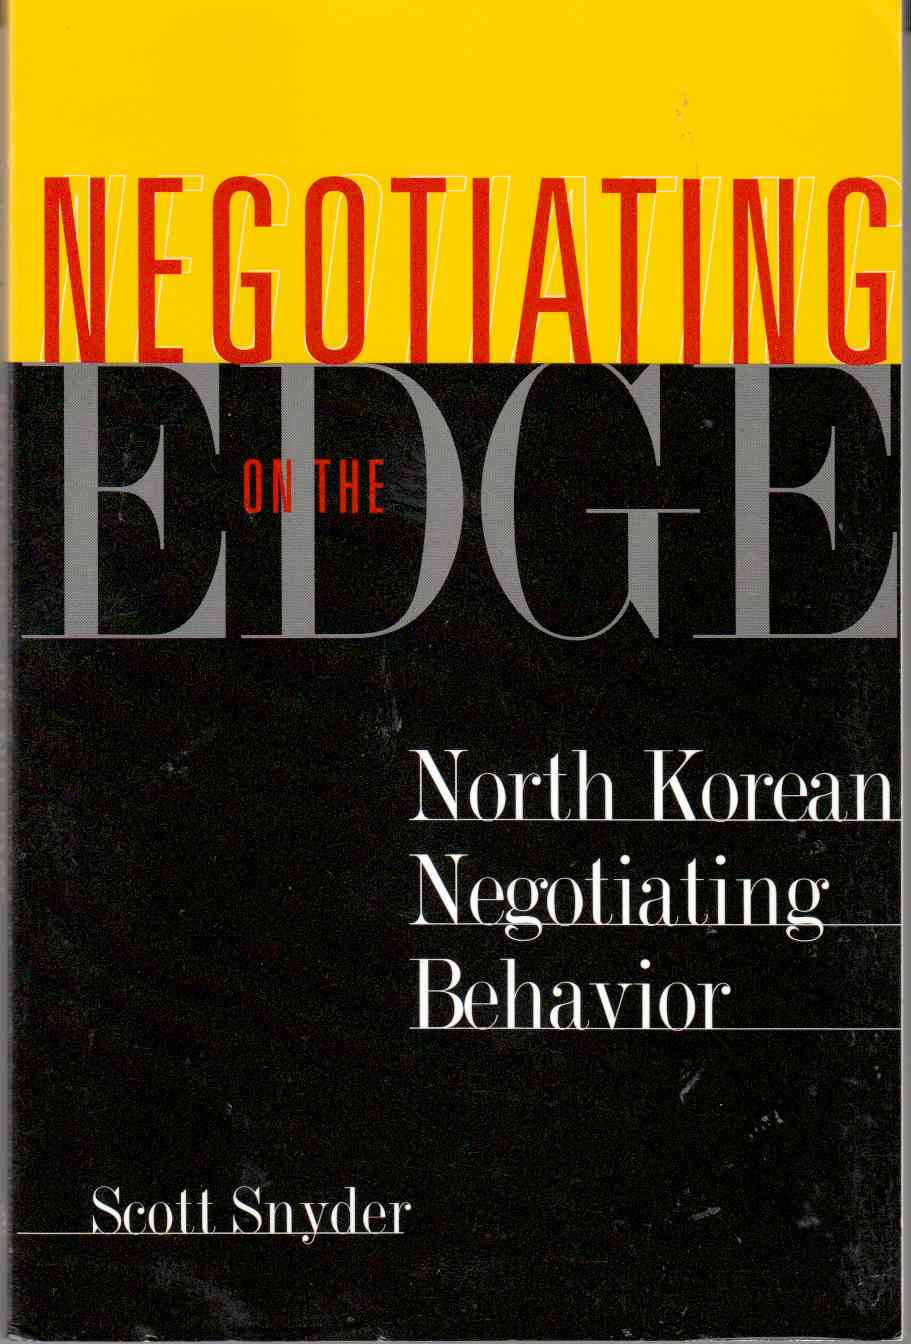 Image for Negotiating on the Edge North Korean Negotiating Behaviour